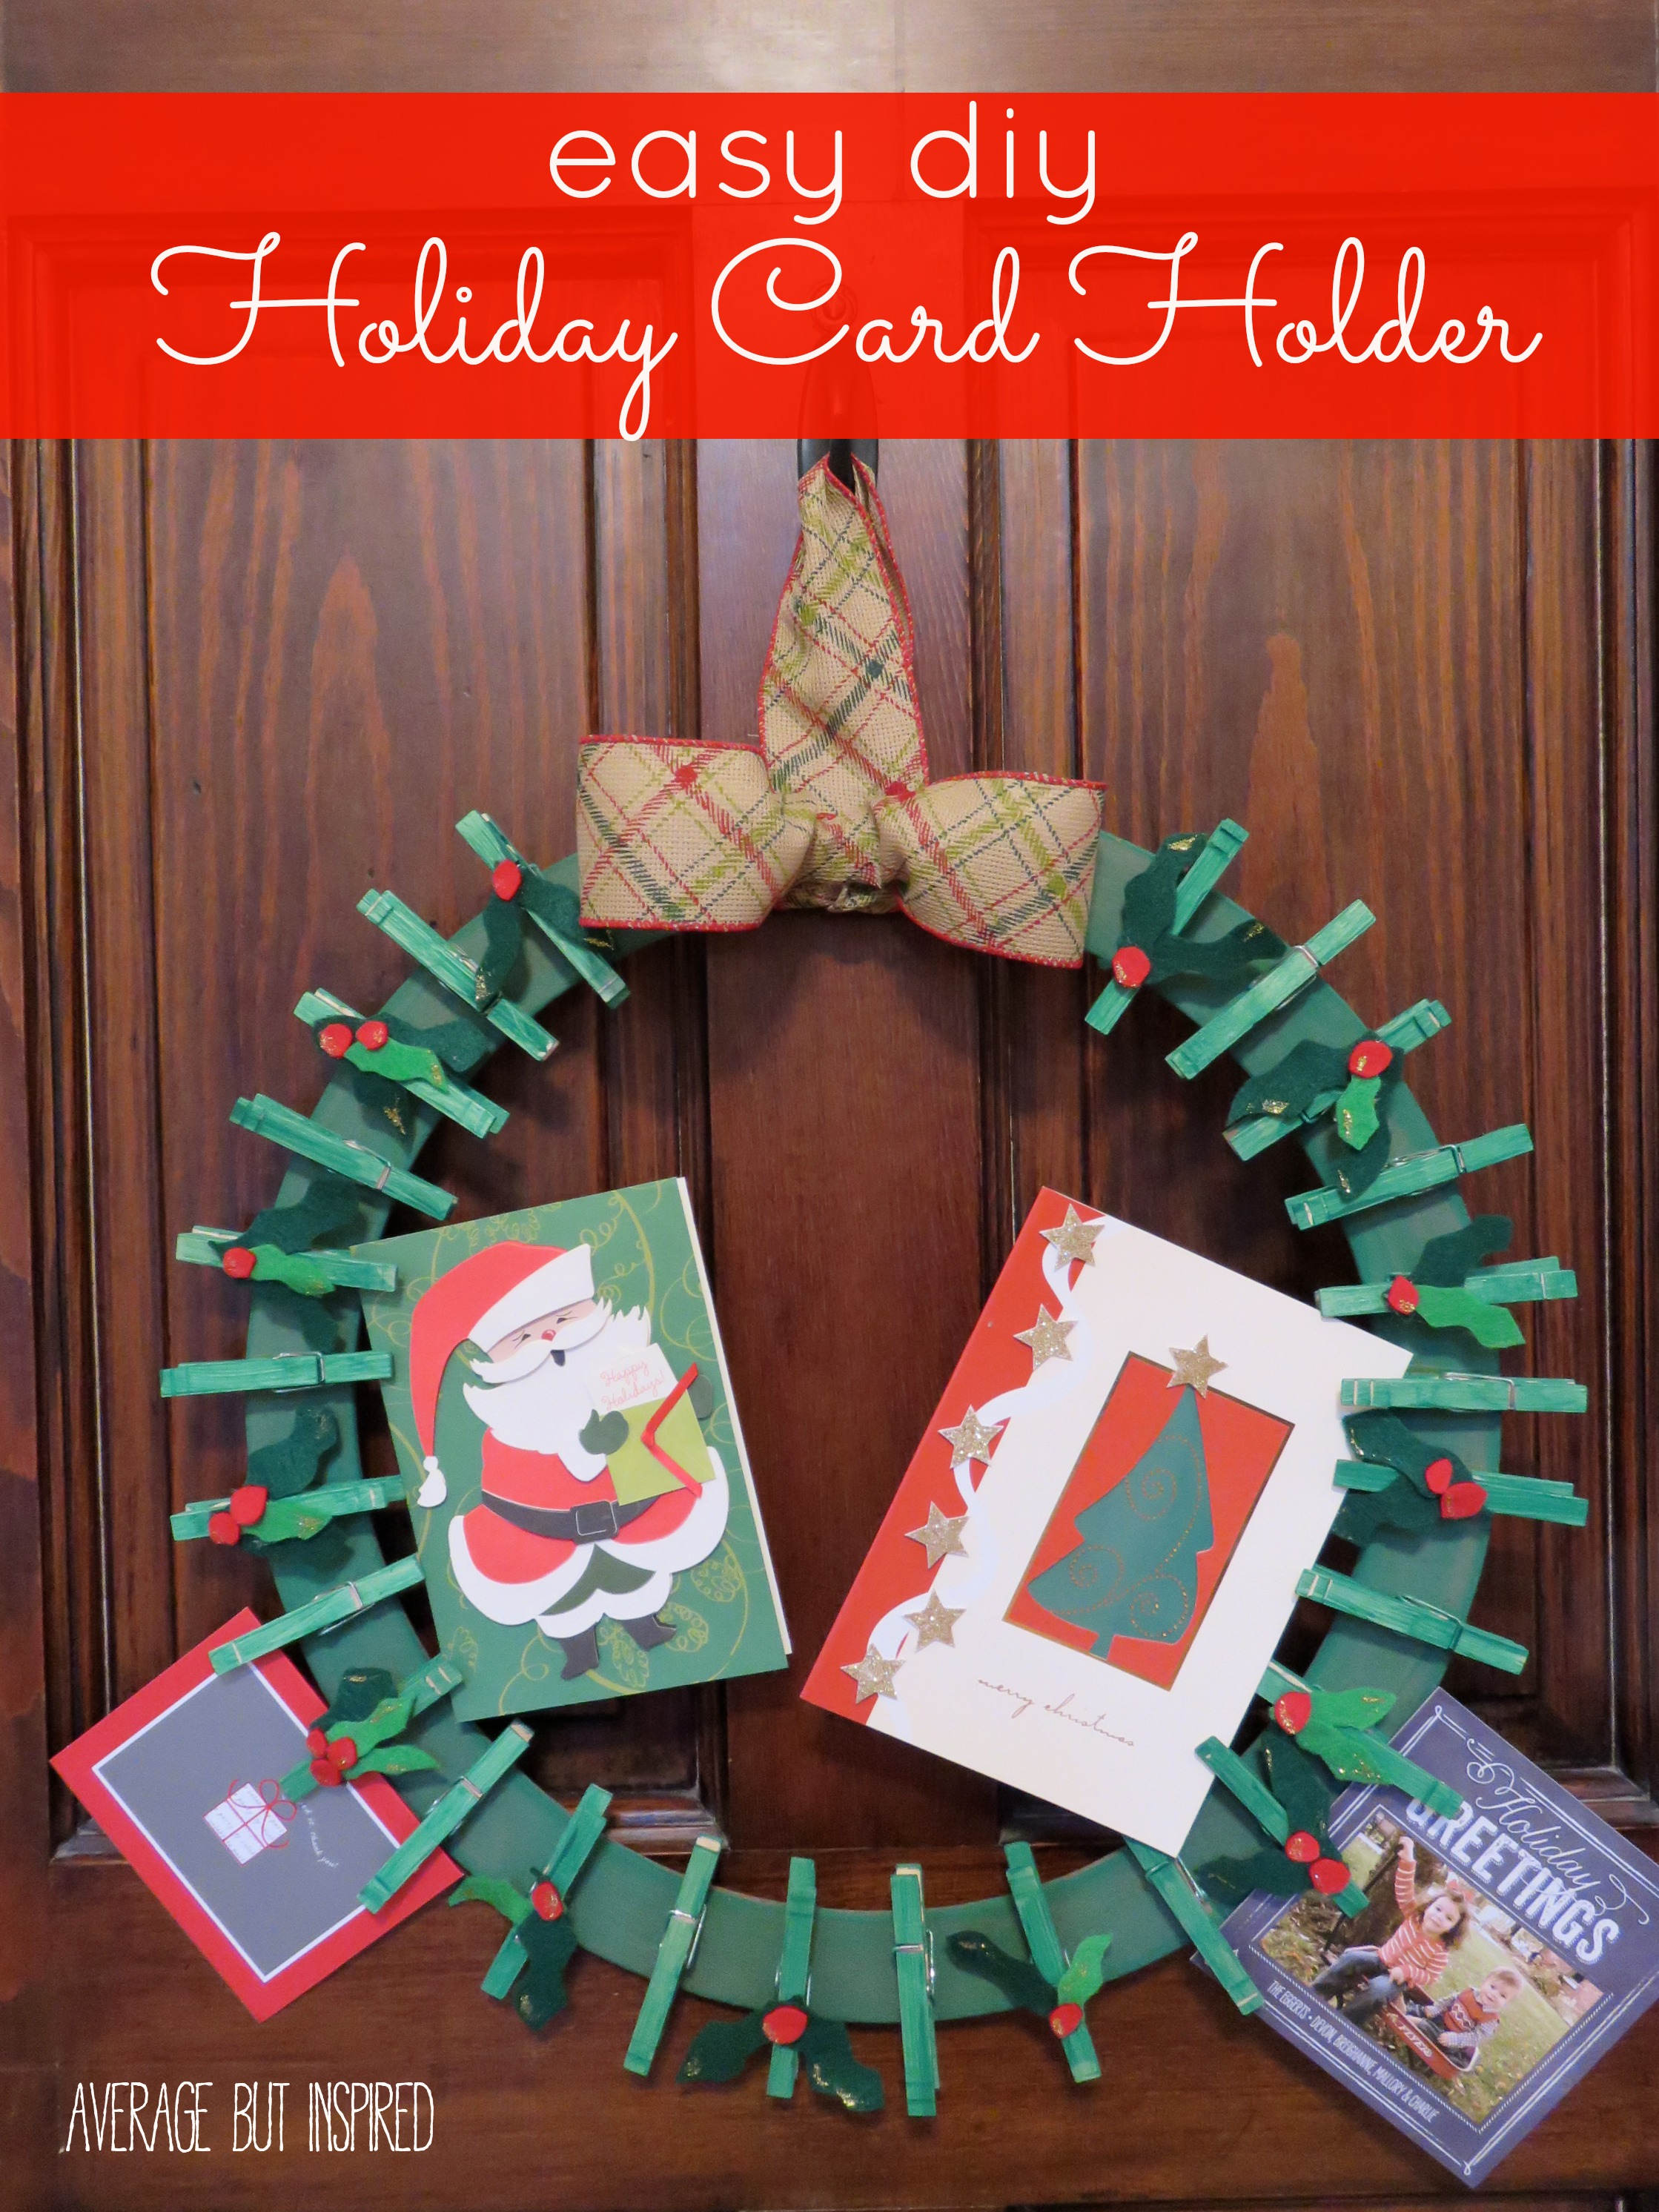 10 unique ways to display your christmas cards easy diy holiday card holder m4hsunfo